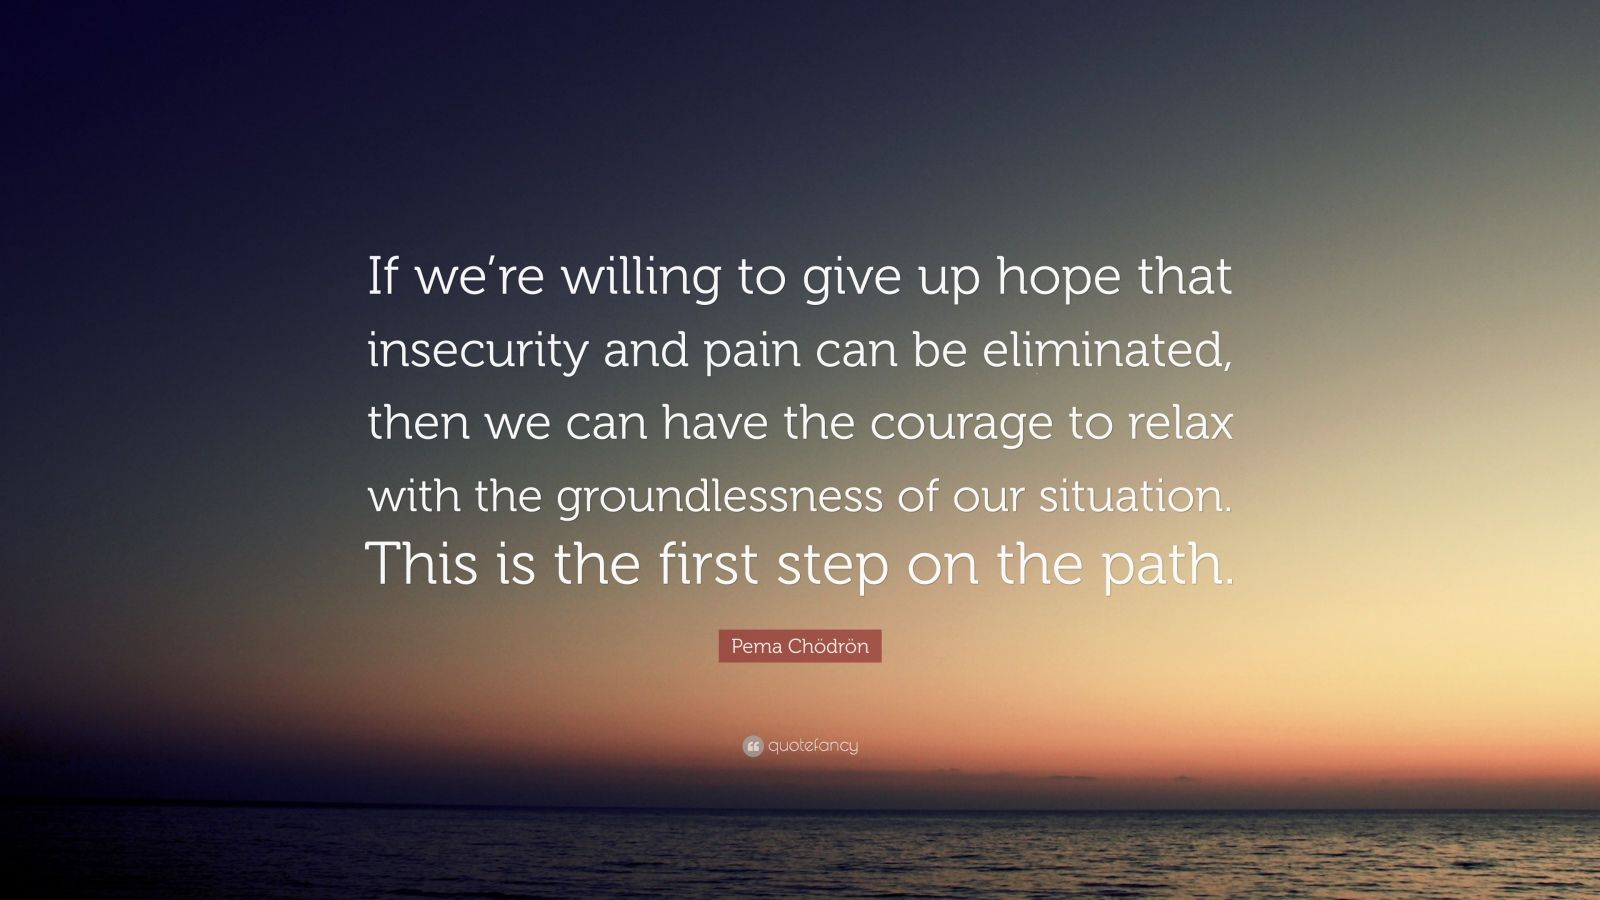 """Pema Chödrön Quote: """"If we're willing to give up hope that insecurity and pain can be eliminated, then we can have the courage to relax with the groundlessness of our situation. This is the first step on the path."""""""